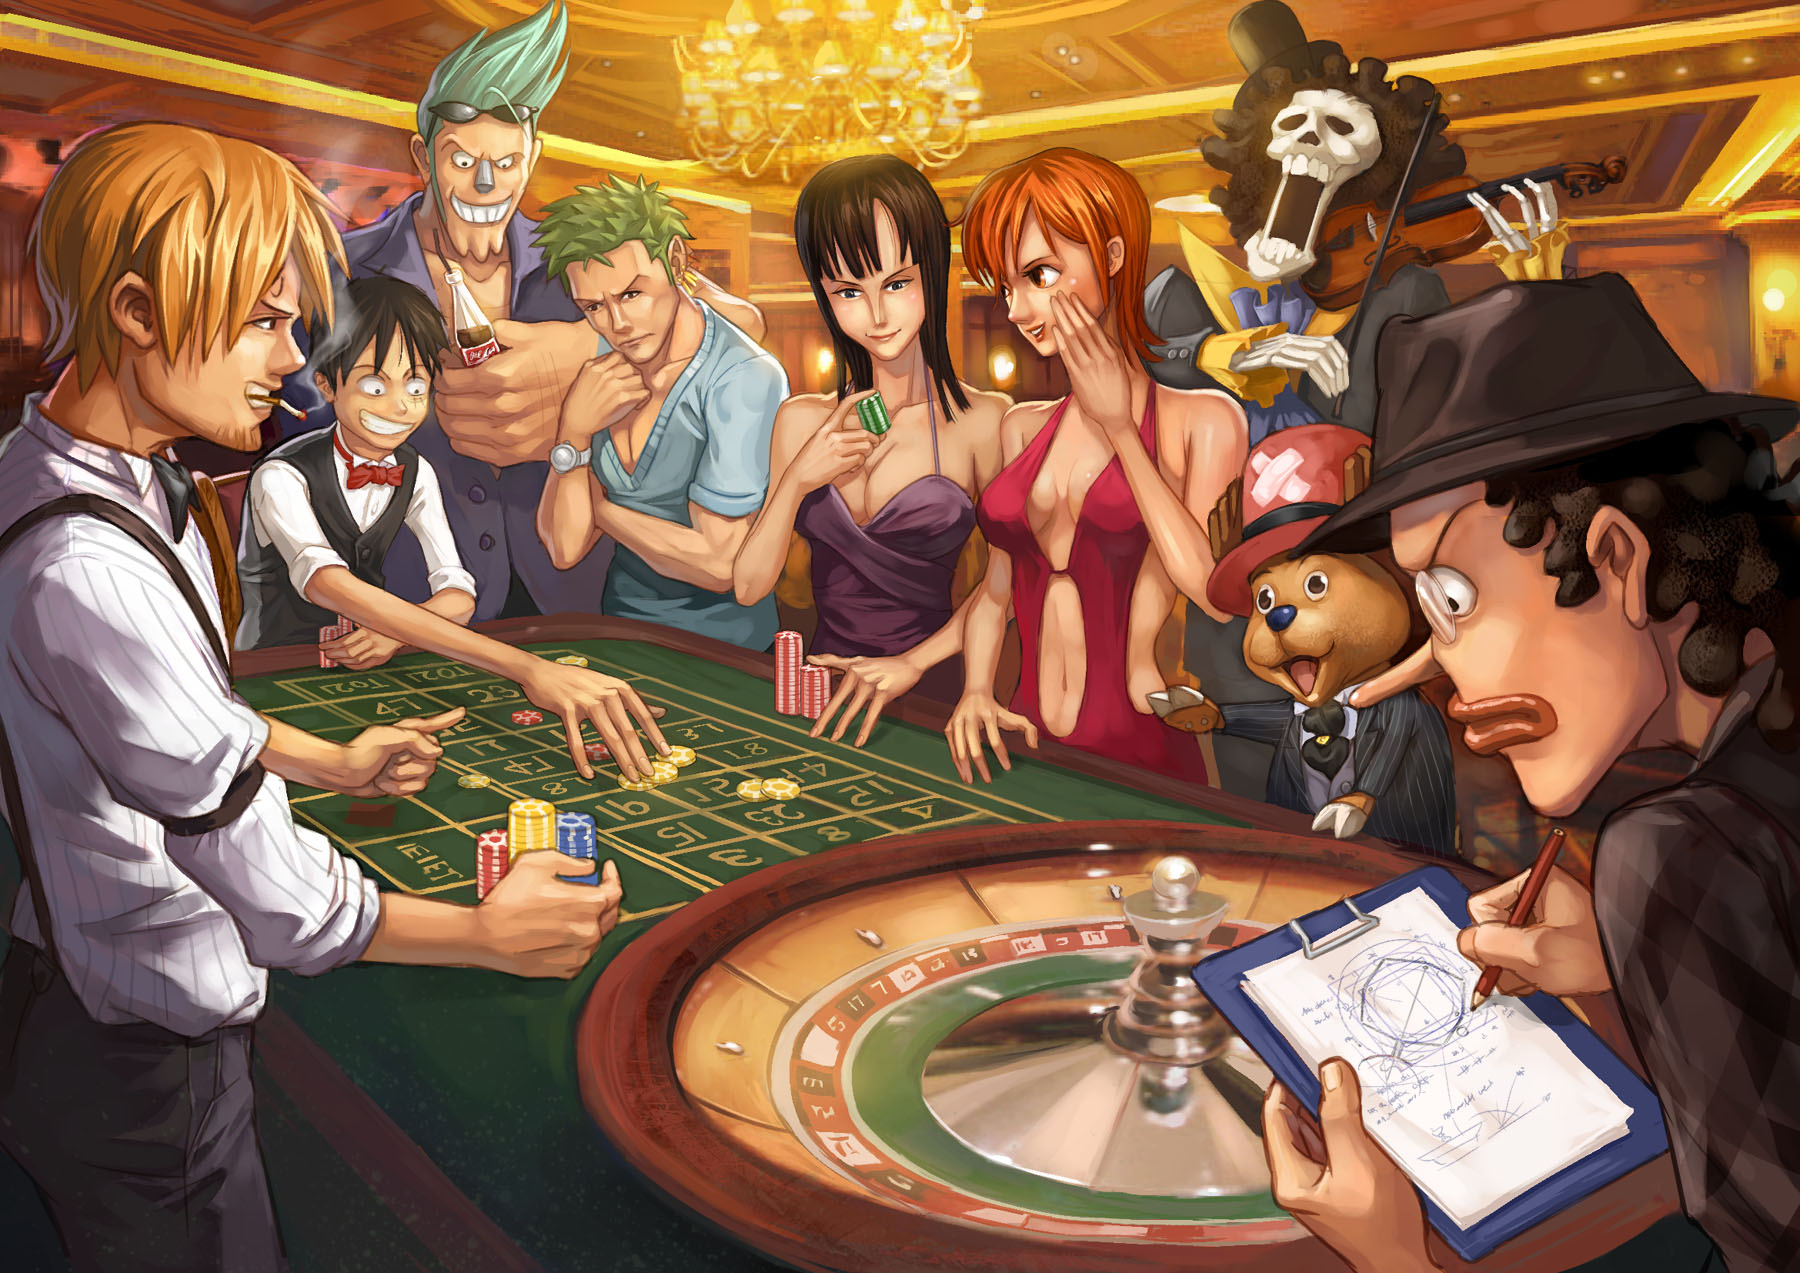 Full Anime One Piece Wallpaper 1800x1273